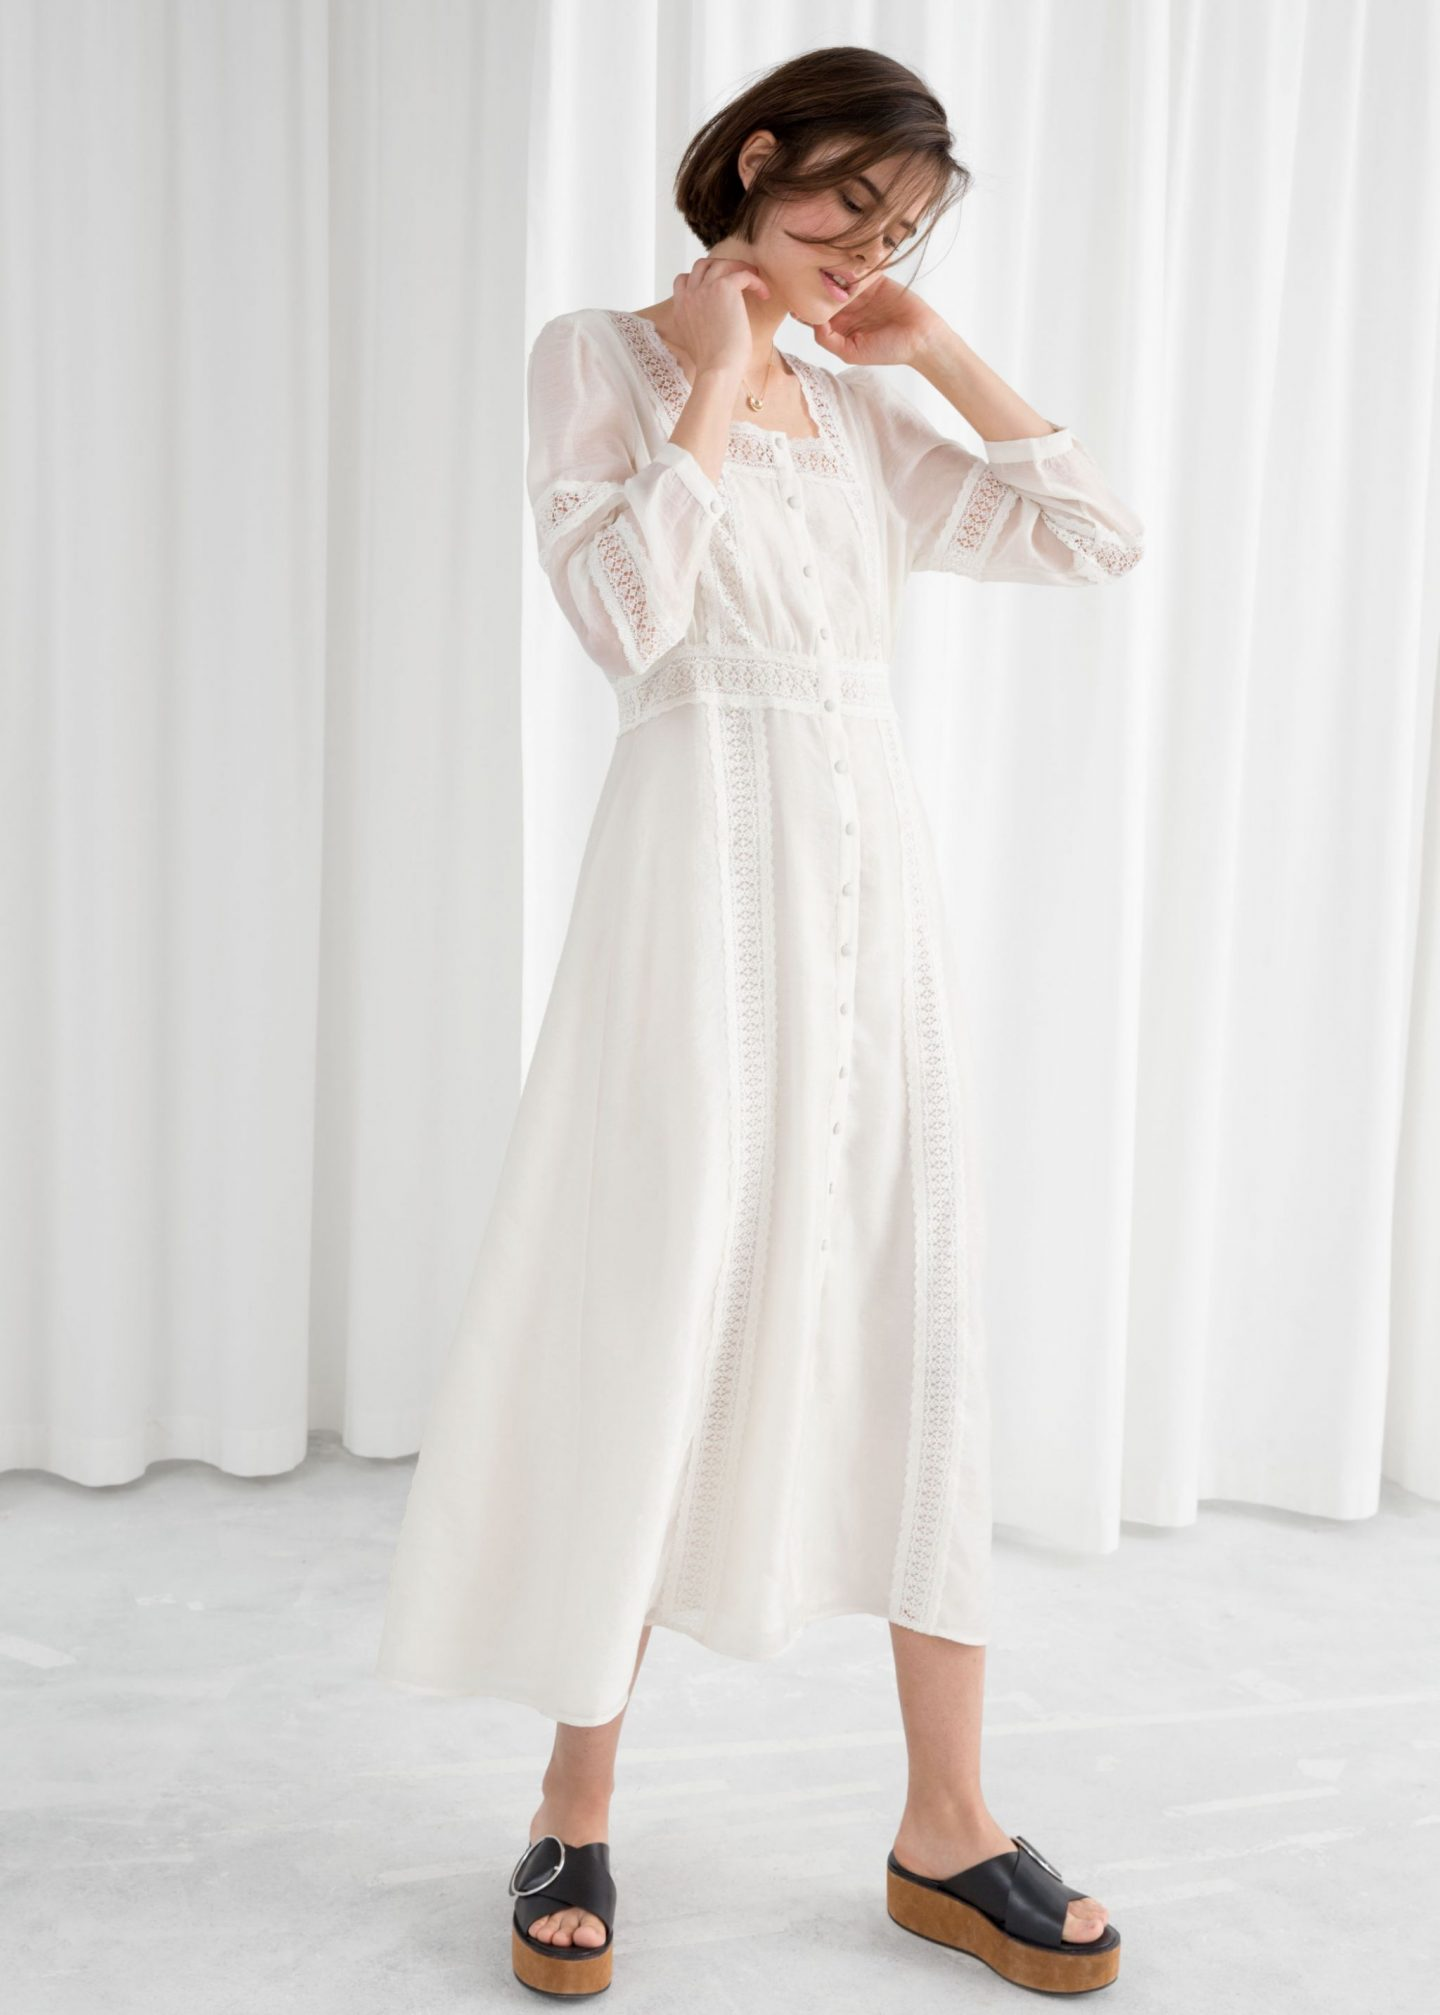 https://www.stories.com/en_eur/clothing/dresses/product.lace-midi-dress-white.0656822001.html